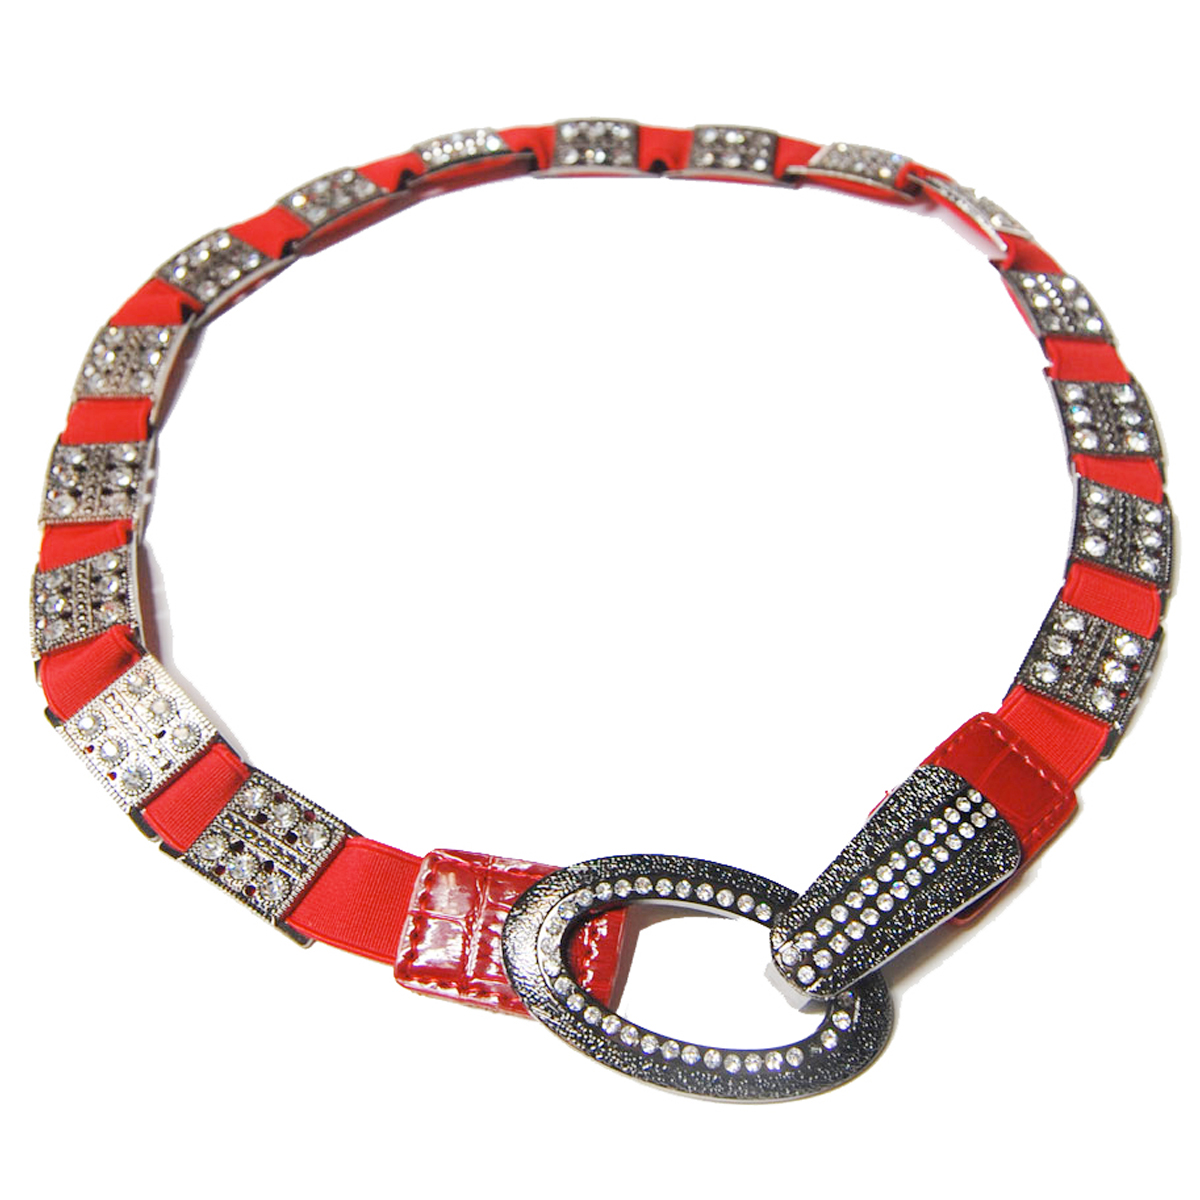 Crystal Stretch Belt - Red